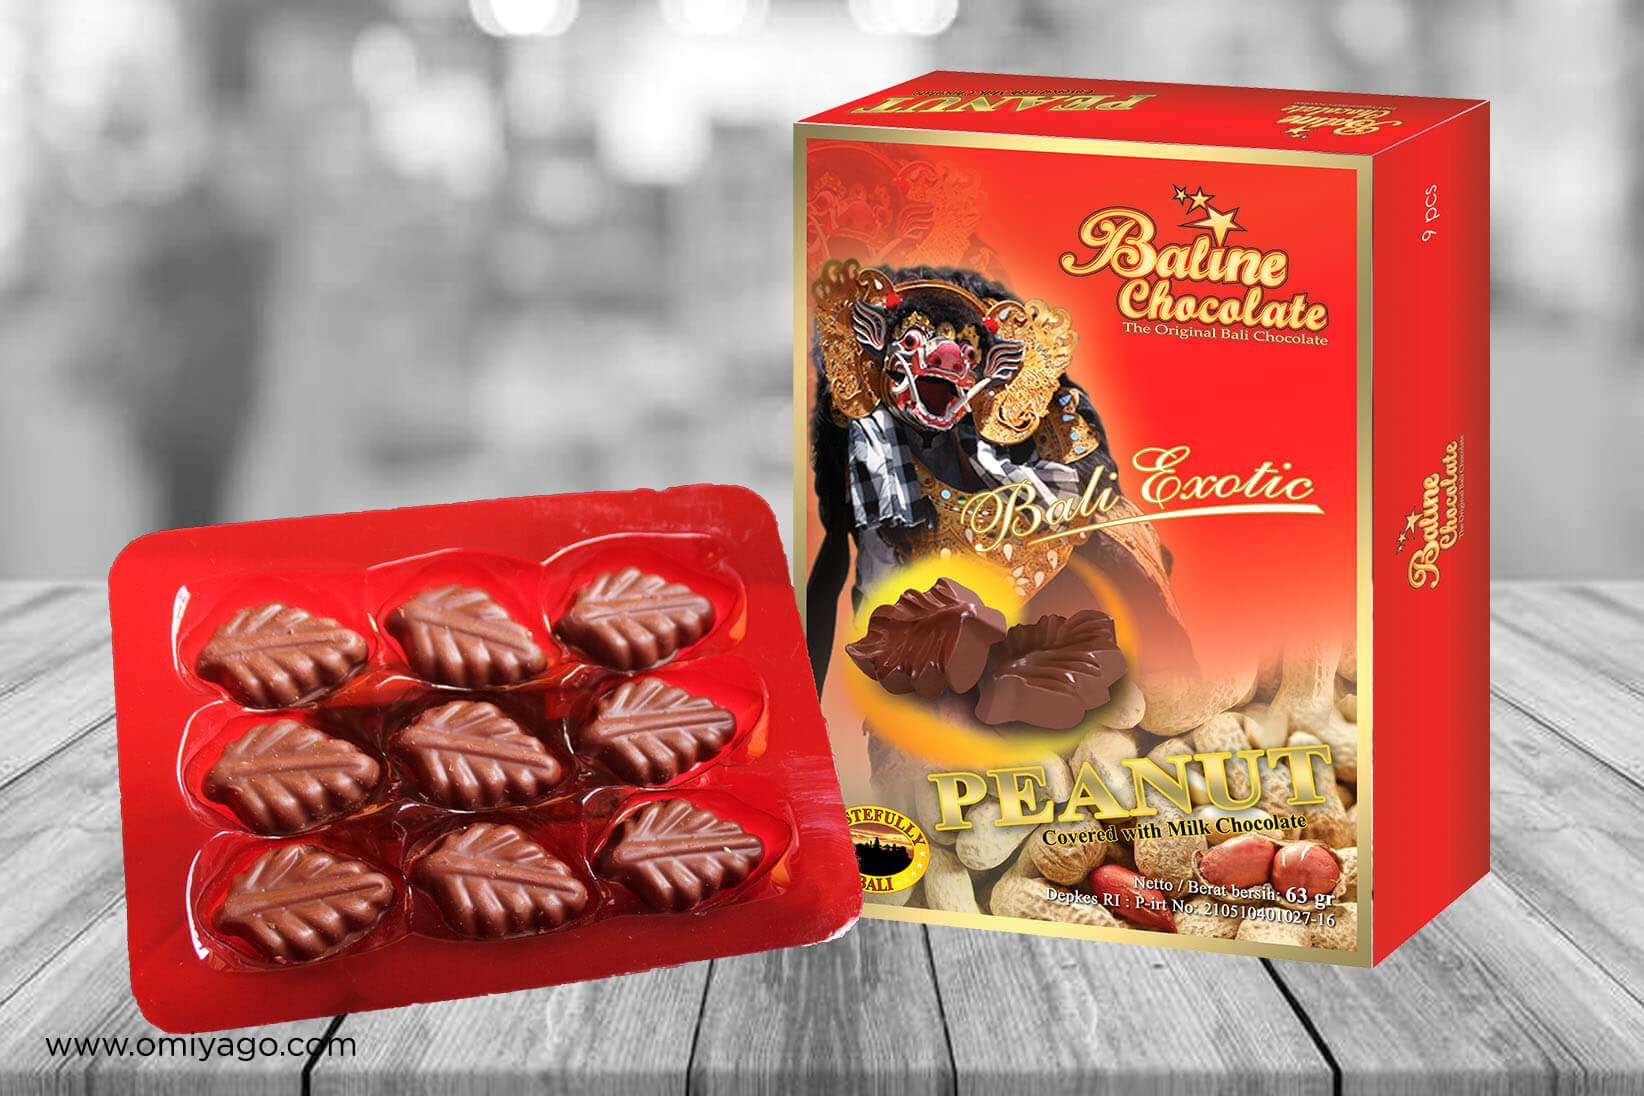 Baline Chocolate Peanut